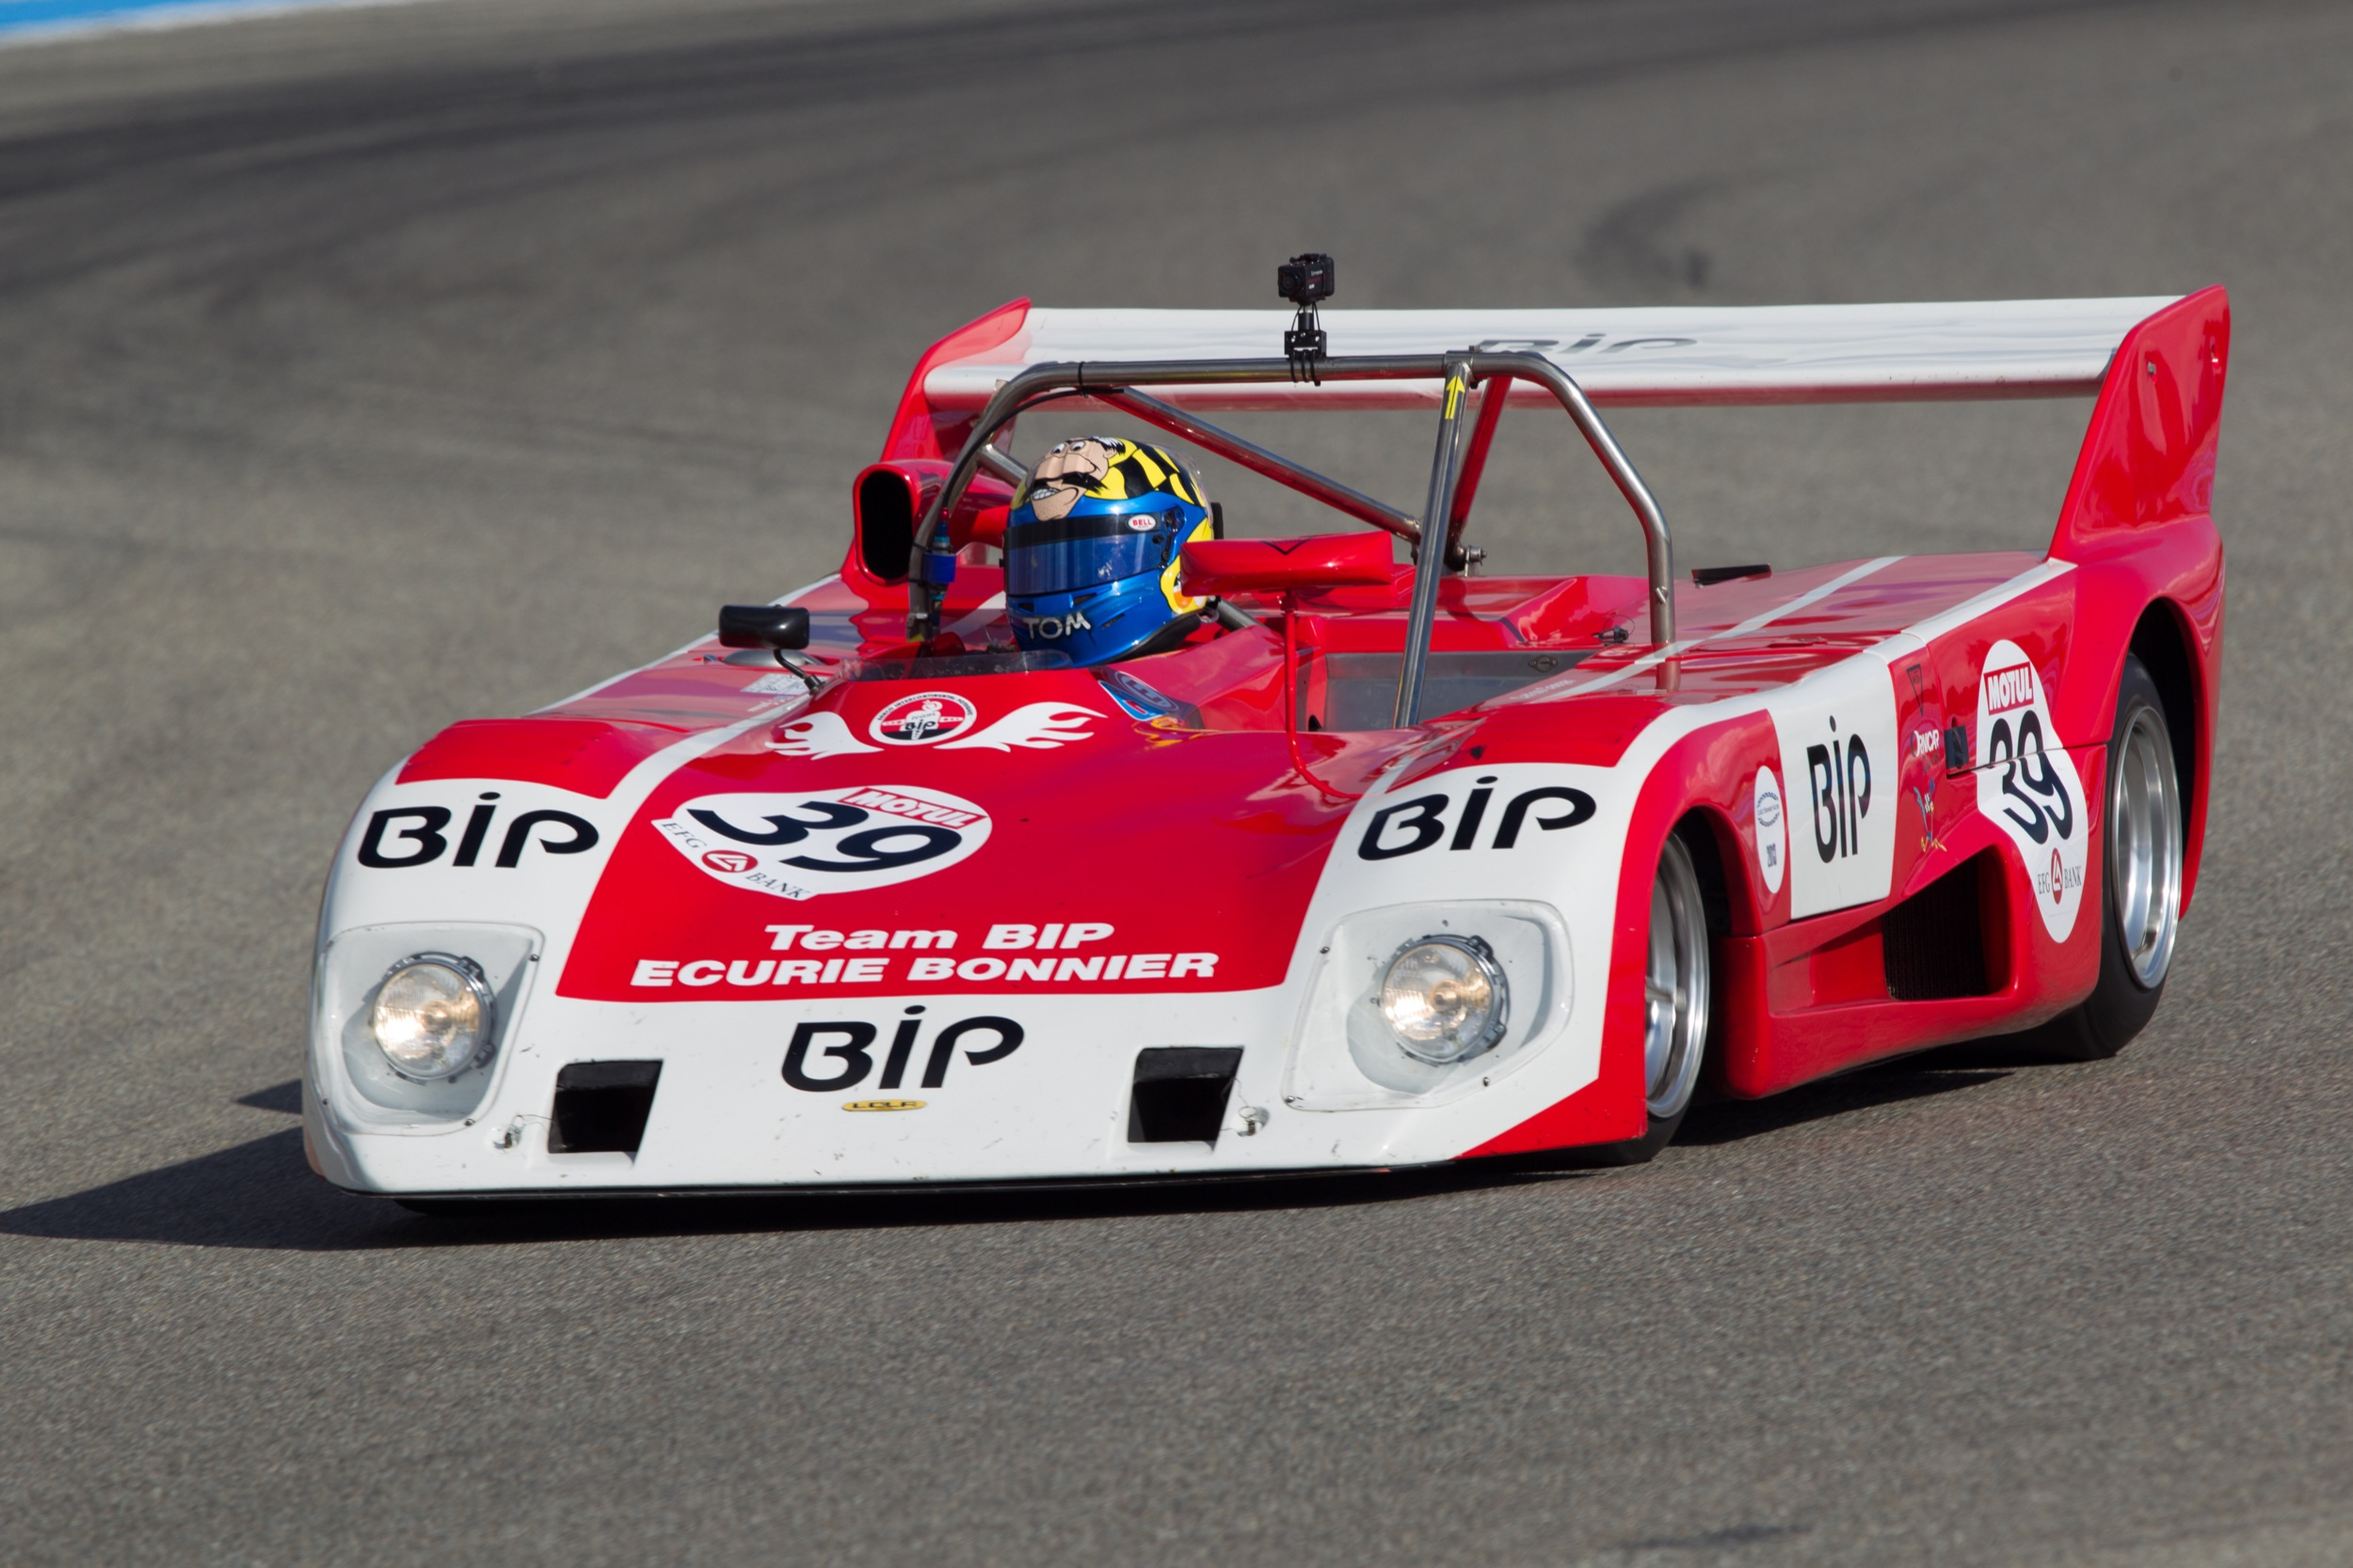 LOLA T292 HU 64 for sale Ascott Collection 6.jpg